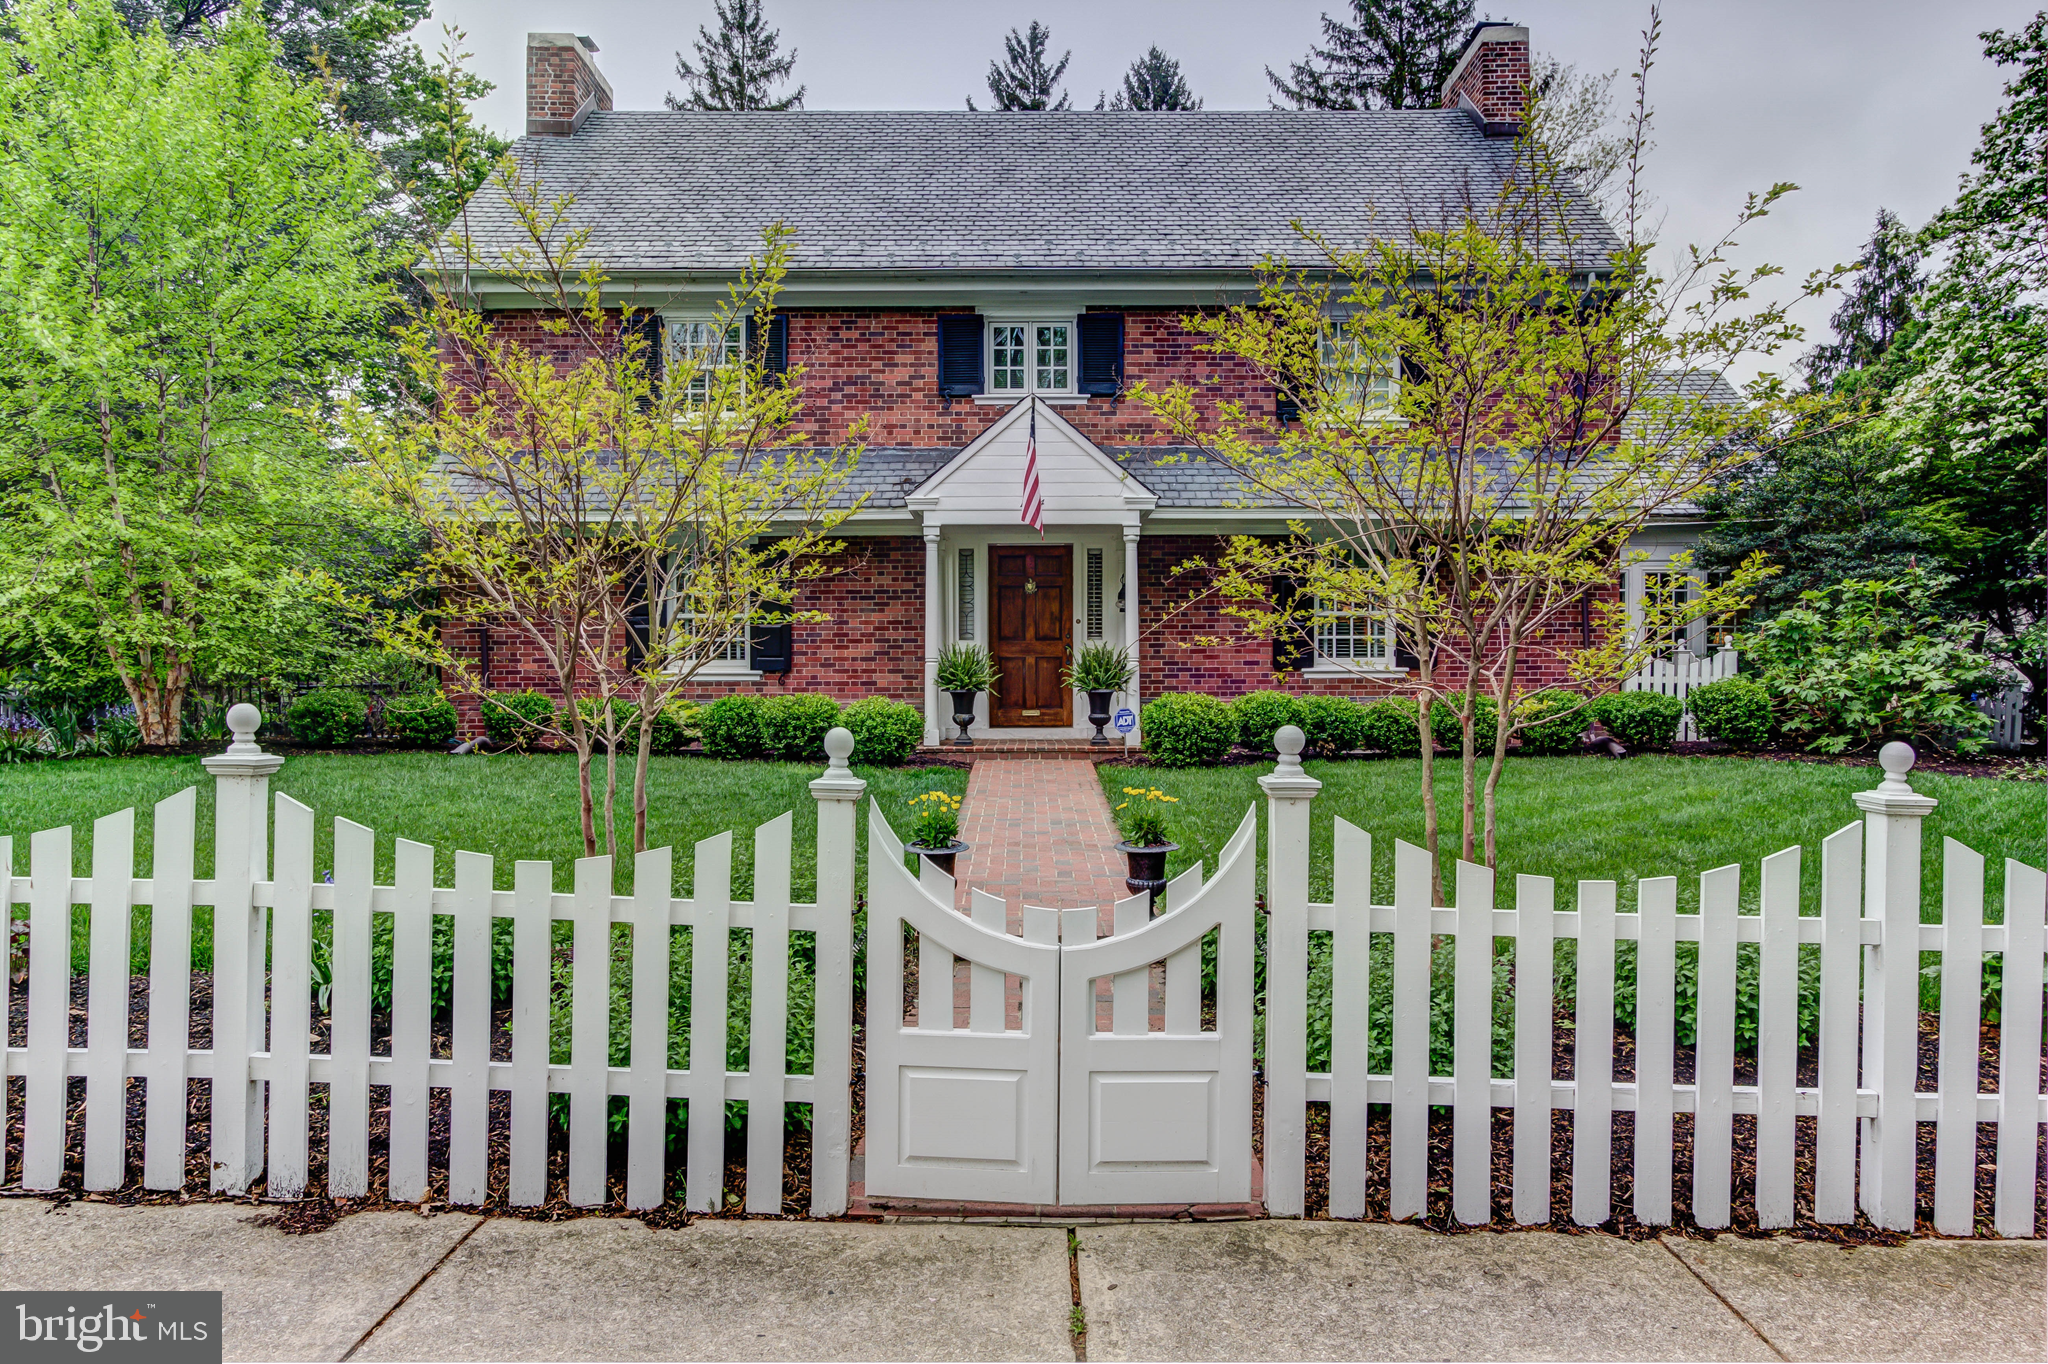 Architecturally and historically significant City home in superior condition. Over the past 20 years owners have lovingly restored and improved upon all original spaces of home. Home has been featured in Delaware Today magazine and Heart of the Home Kitchen Tour. Its outstanding gardens have been awarded several different Garden Club awards. Features of the home include designer kitchen with custom cabinetry, commercial appliances including Wolf cooktop, Subzero refrigerator and wine cooler, and Dacor warming drawer, granite countertops, and island with walnut countertop. The upper level includes a master suite with 4 piece newly renovated bath, 3 other generous bedrooms, 2 full baths, and a second floor den that could easily accommodate overflow company as a 5th bedroom.  The main floor boasts a family room off of kitchen with barrel-vaulted ceiling, Dining room with custom molding details, a Living room with fireplace, powder room, and a bright, glass-surrounded Sunroom overlooking private brick terrace. An attached 3-car garage offers convenience and ample parking. The lower level with outside entrance includes a media room with fireplace, powder room, workshop area, and laundry room. The rear yard offers absolute privacy, award-winning perennial gardens, and a Koi pond. Outdoor enjoyment is enhanced by two custom built arbors, one with seating. Front yard is enclosed by a hand-built custom fence. The house is systematically updated throughout including 2-zone A/C, natural gas heating and hot water, slate roof, Sentricon colony elimination system, and French drain/sump pump system. Just minutes from the restaurants and shopping of Trolley Square and downtown Wilmington.